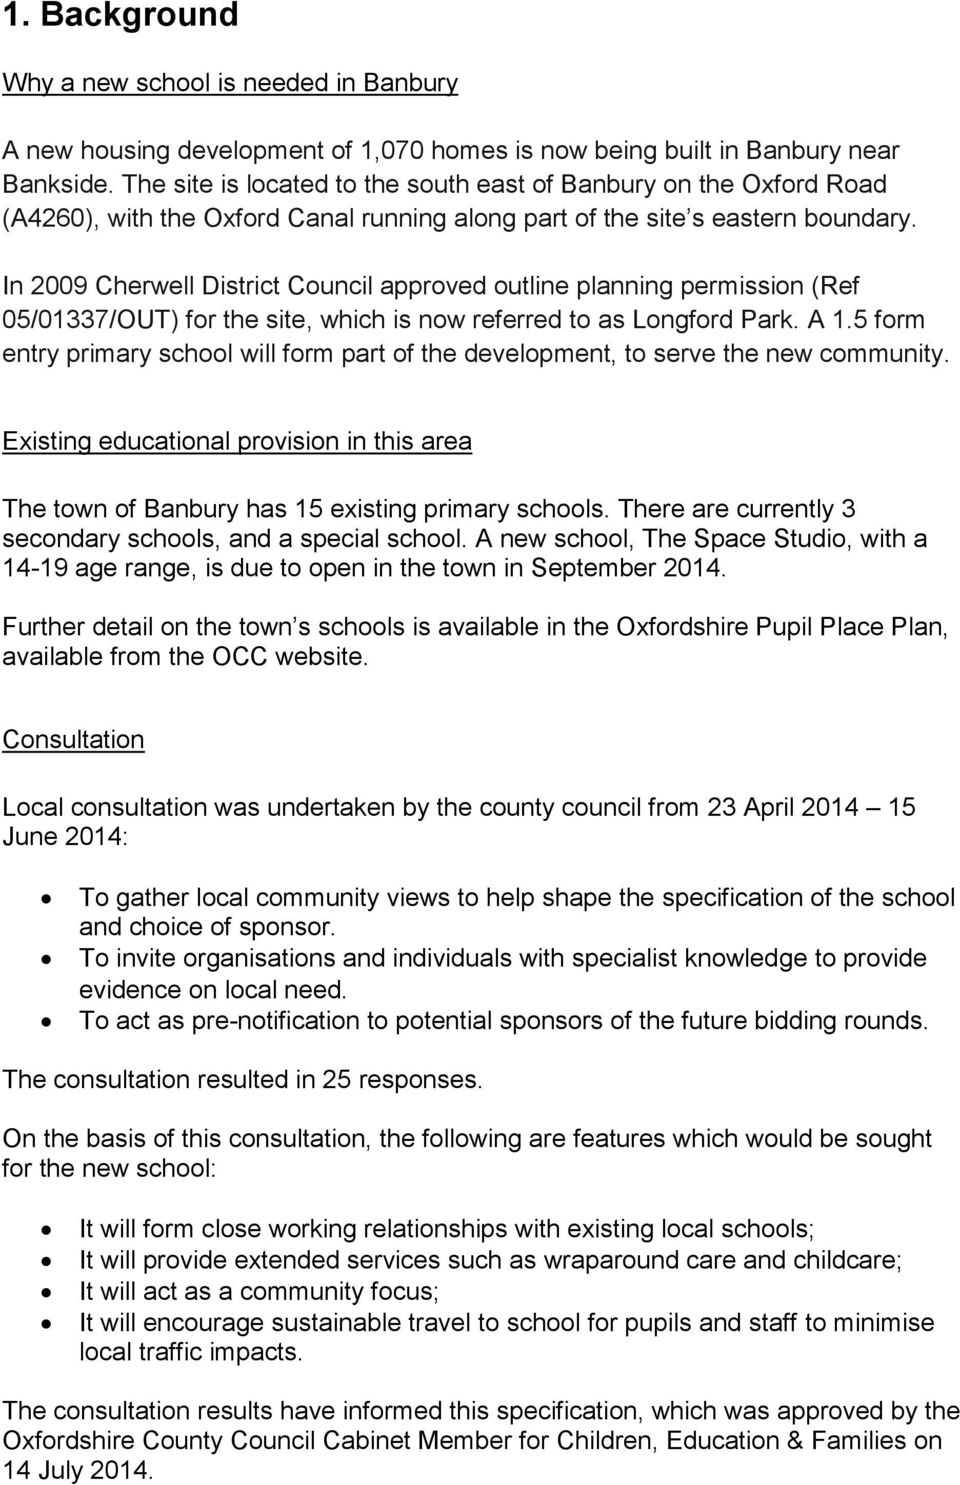 In 2009 Cherwell District Council approved outline planning permission (Ref 05/01337/OUT) for the site, which is now referred to as Longford Park. A 1.